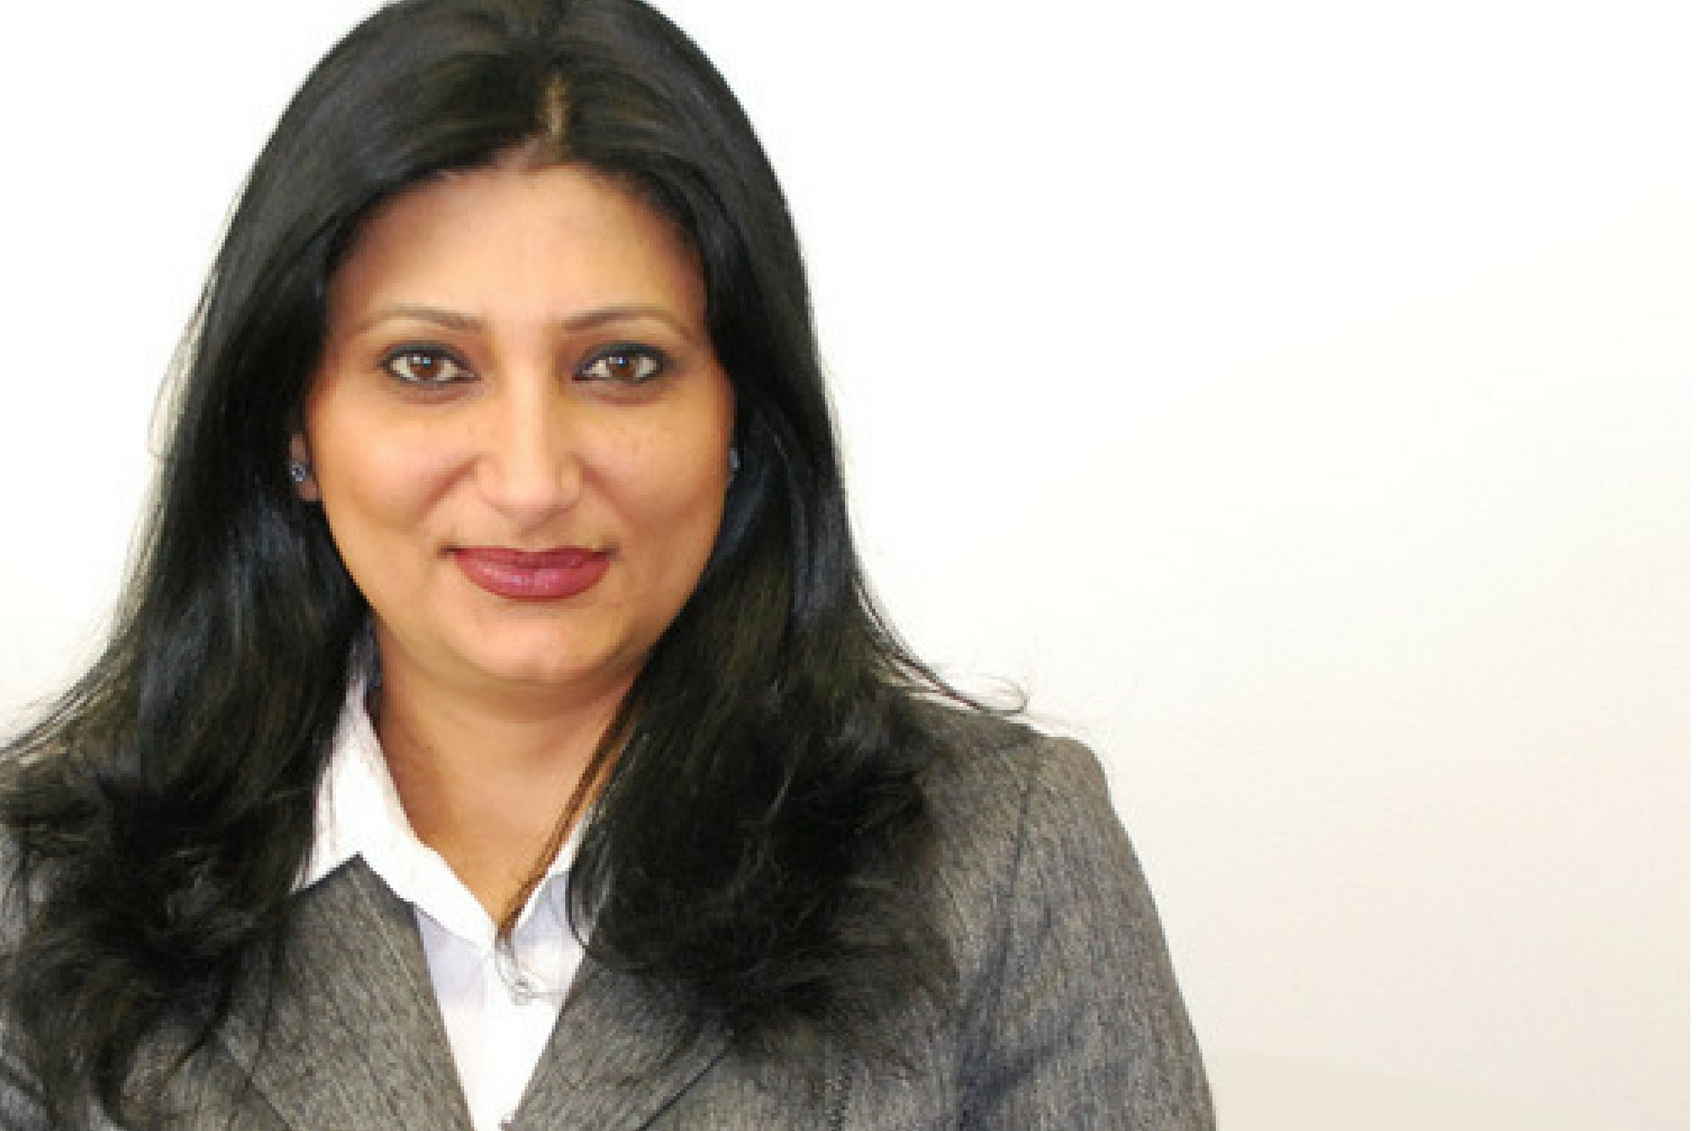 The woman version of Steve Jobs, India native, Neerja Sethi with her husband started a multinational IT consulting firm, Syntel out of their apartment in Michigan with $2,000. Now with a market cap of $3.6 billion and 25,000+ employees, Sethi ranks #16 with a net worth of $1.1 billion as VP.